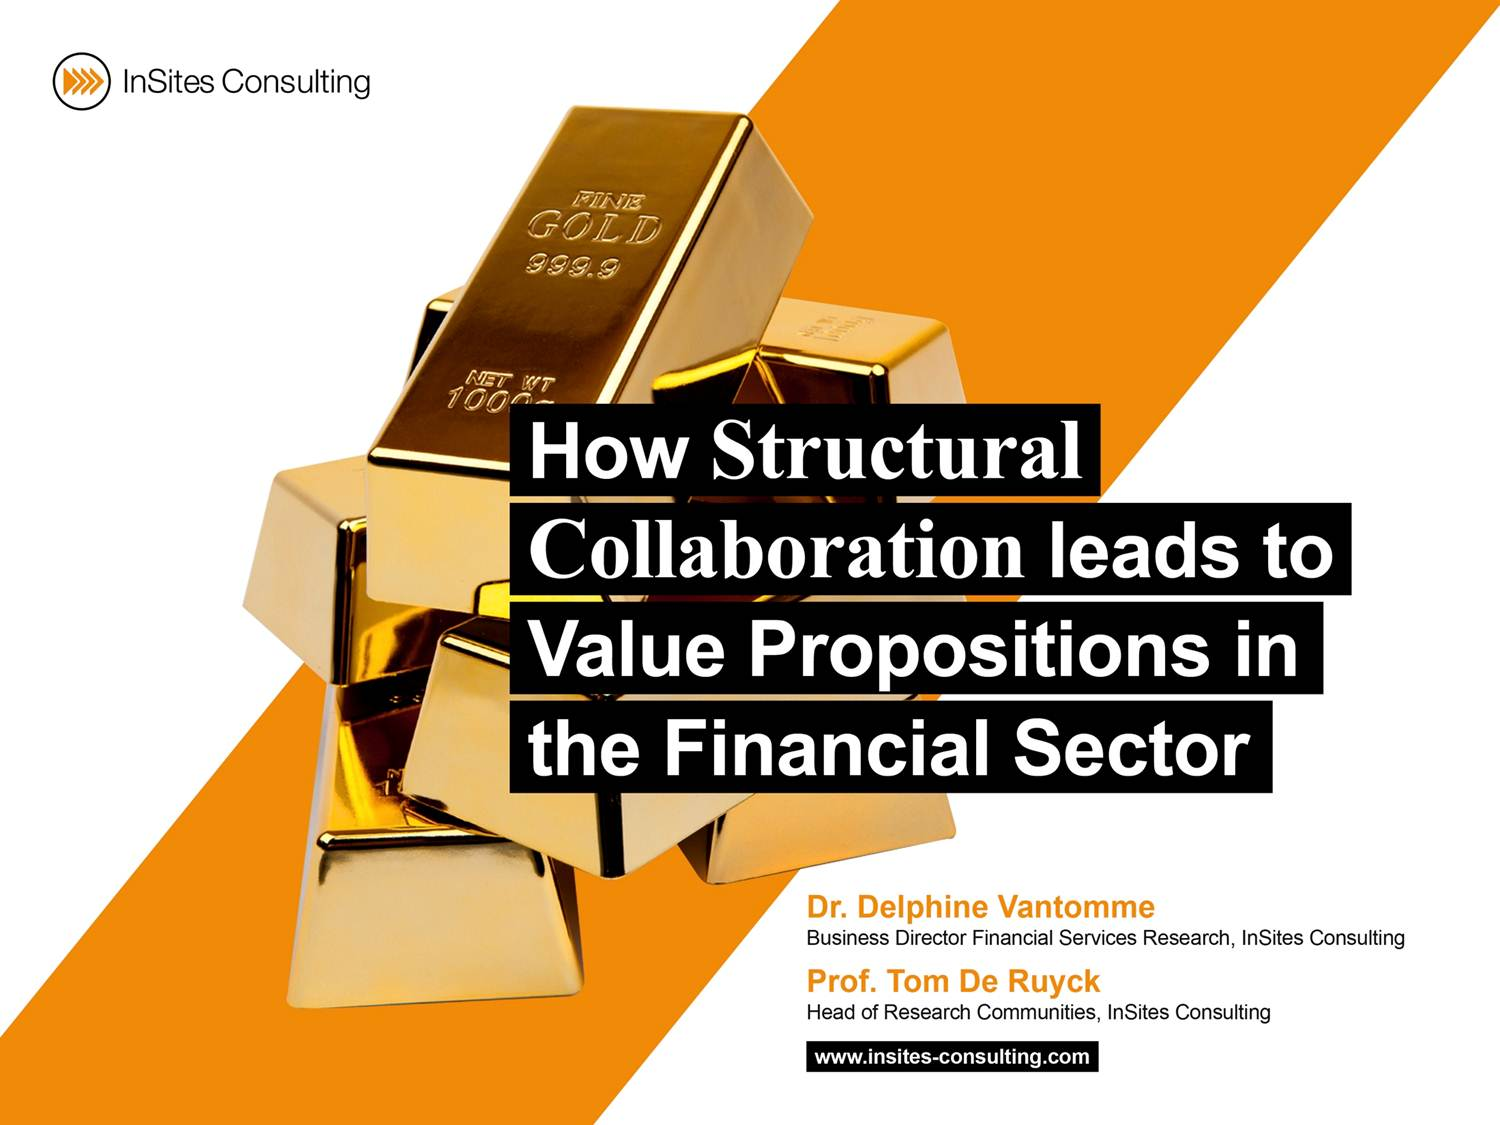 How structural collaboration leads to value propositions